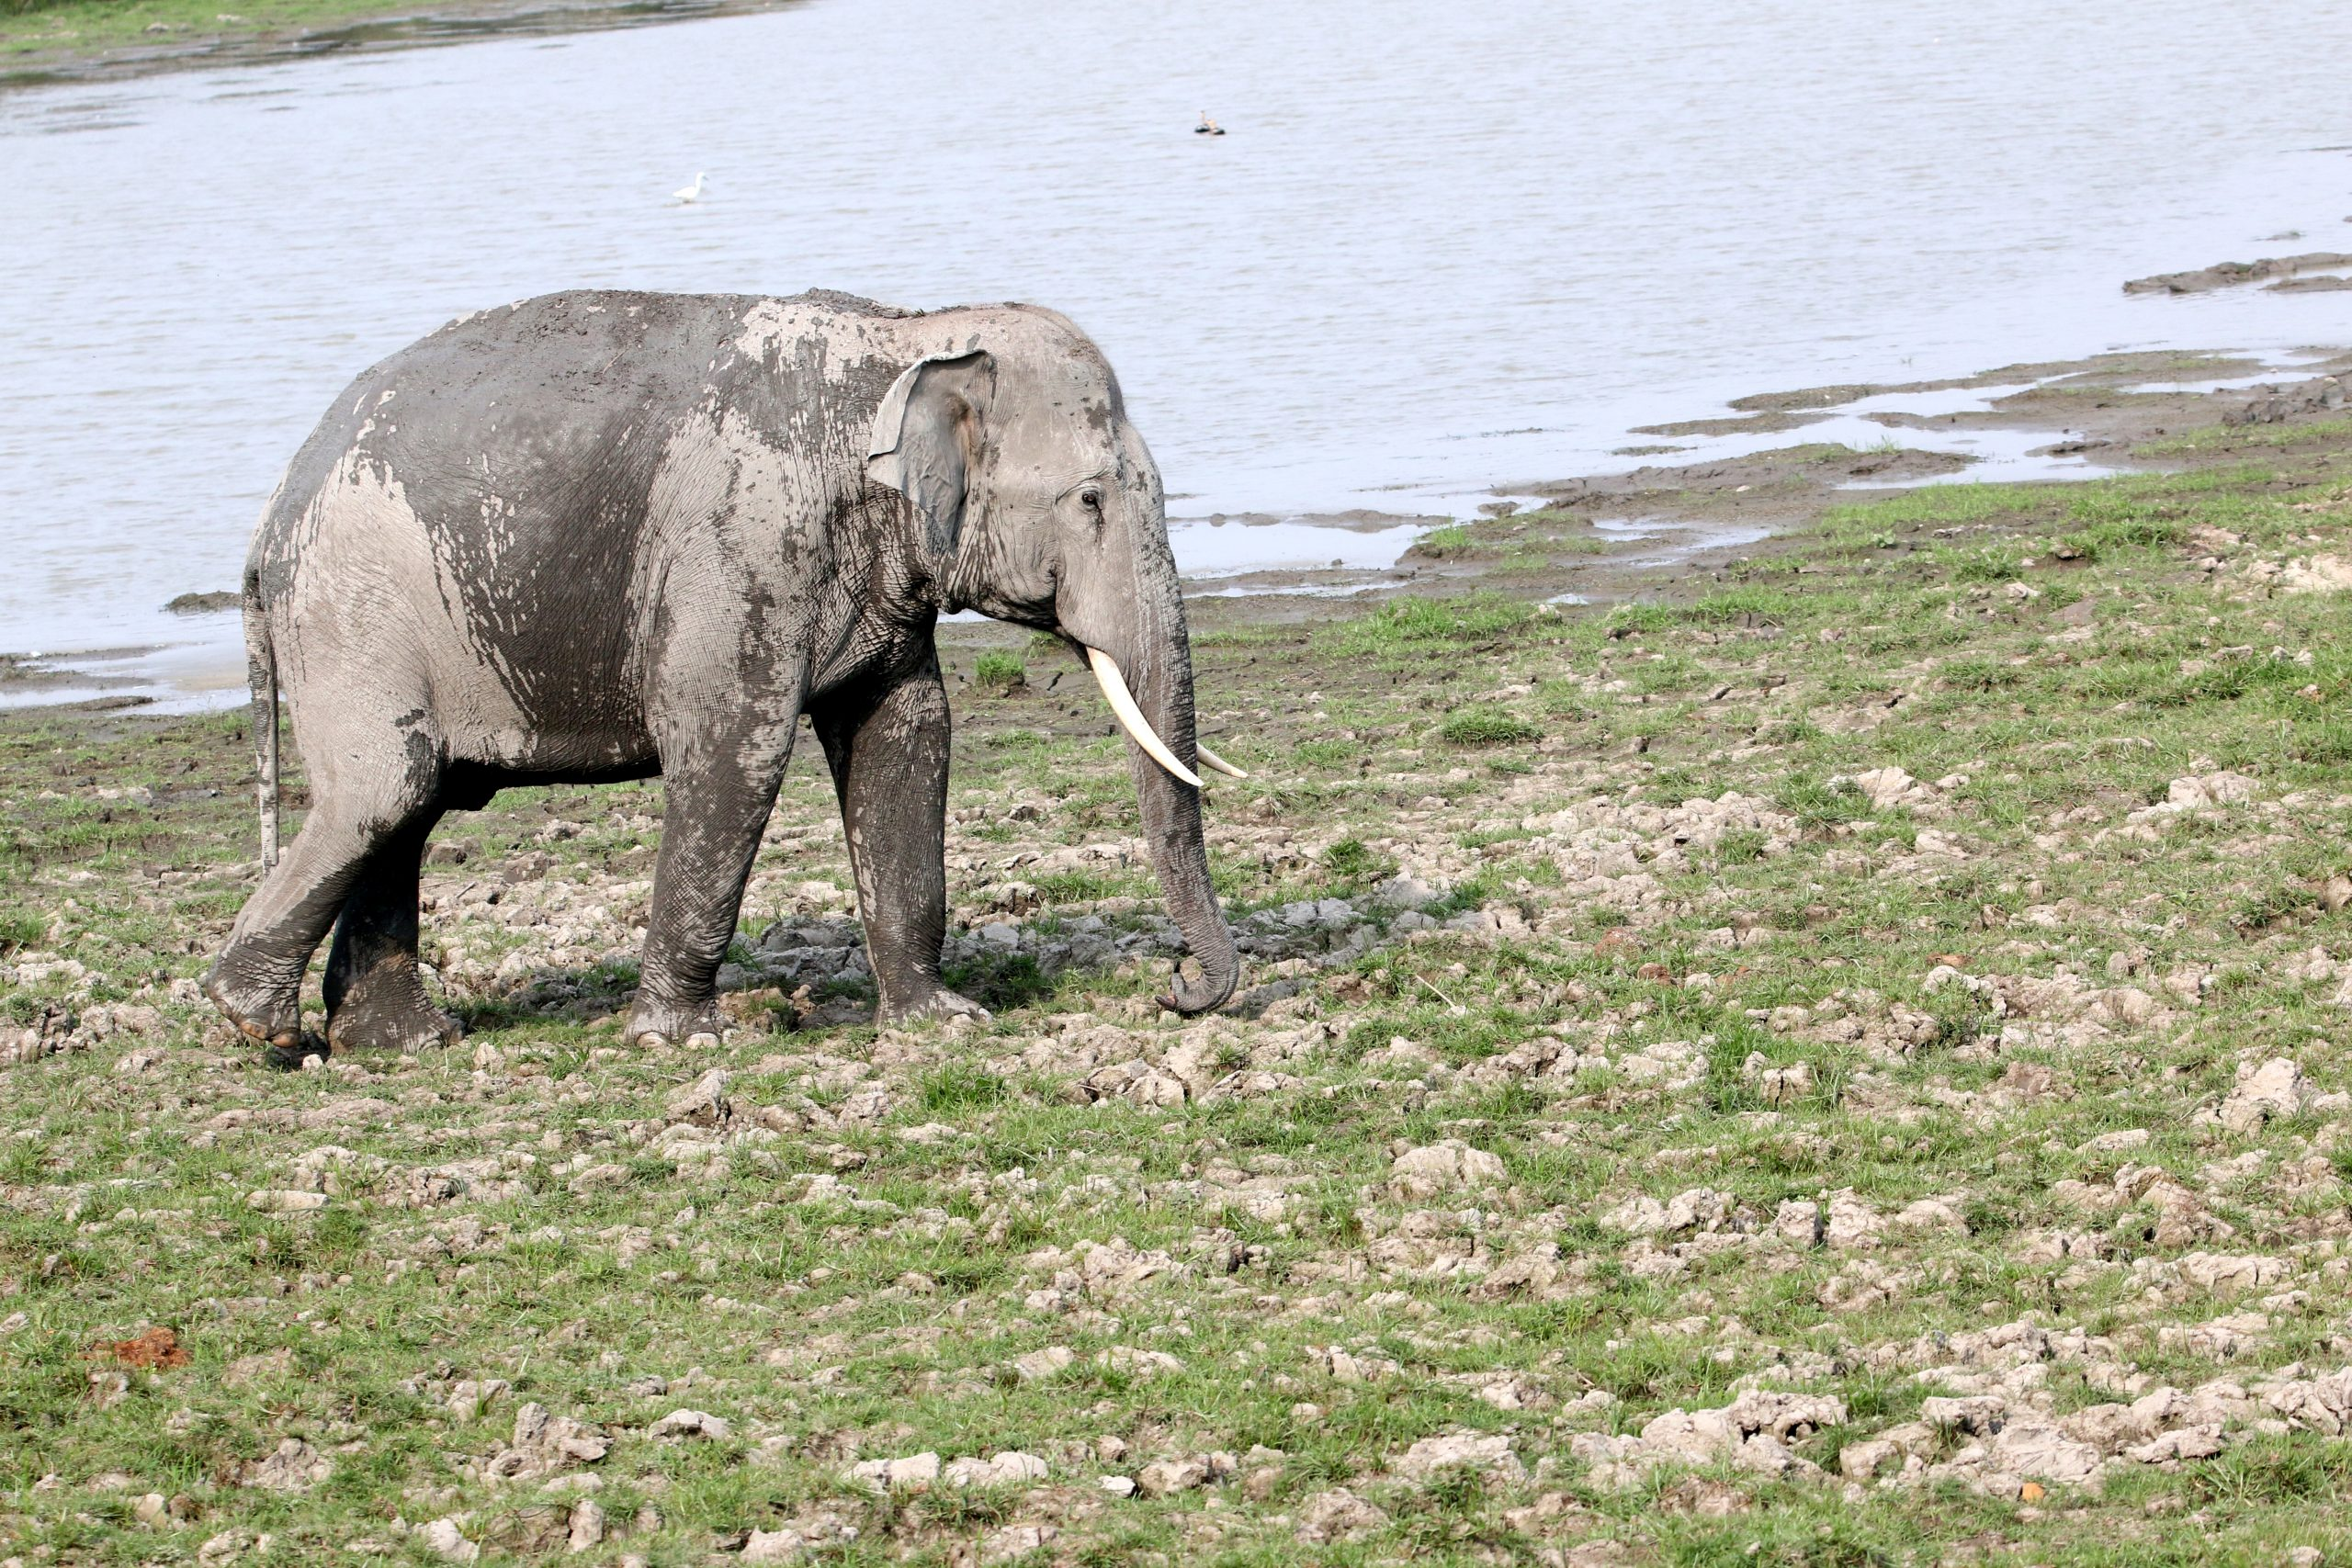 An elephant near a river